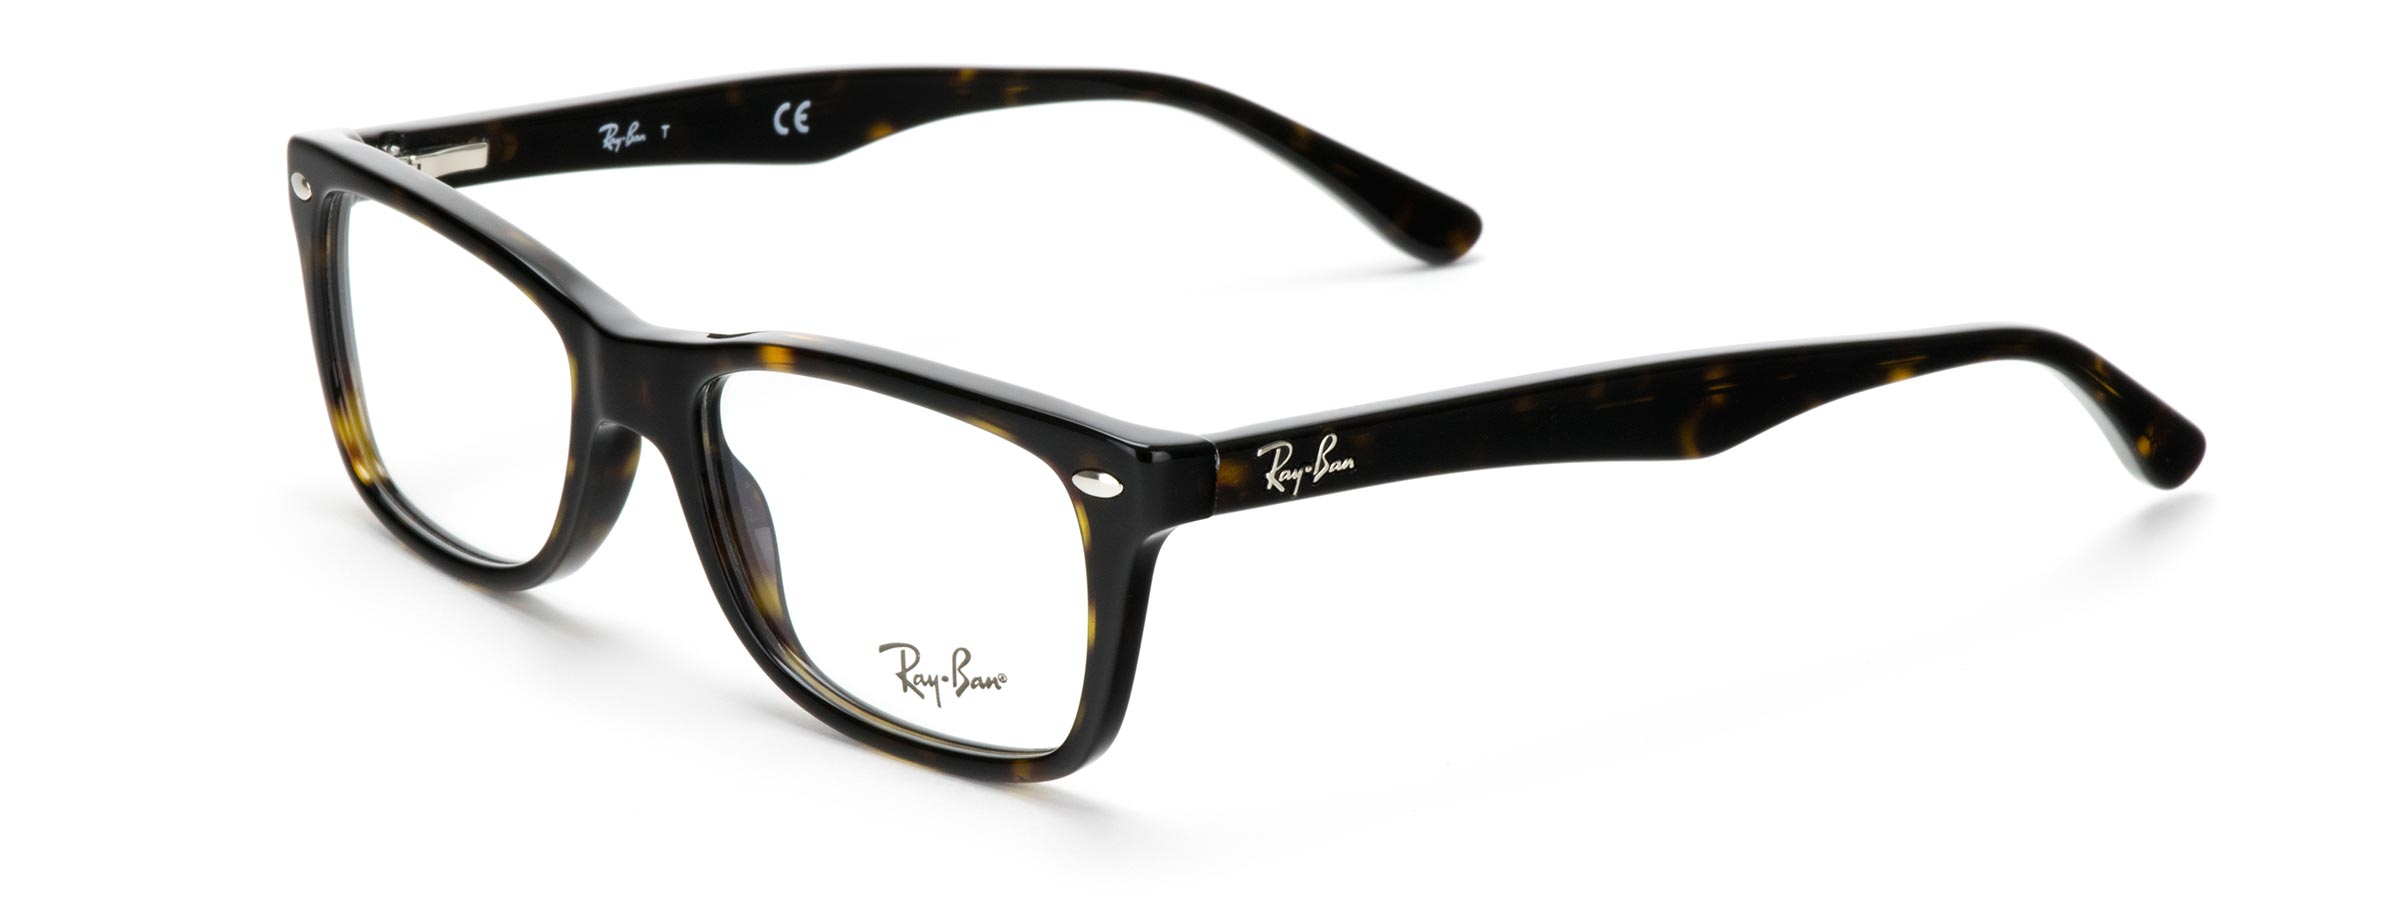 Ray-Ban 5228-50 glasses in Dark Havana